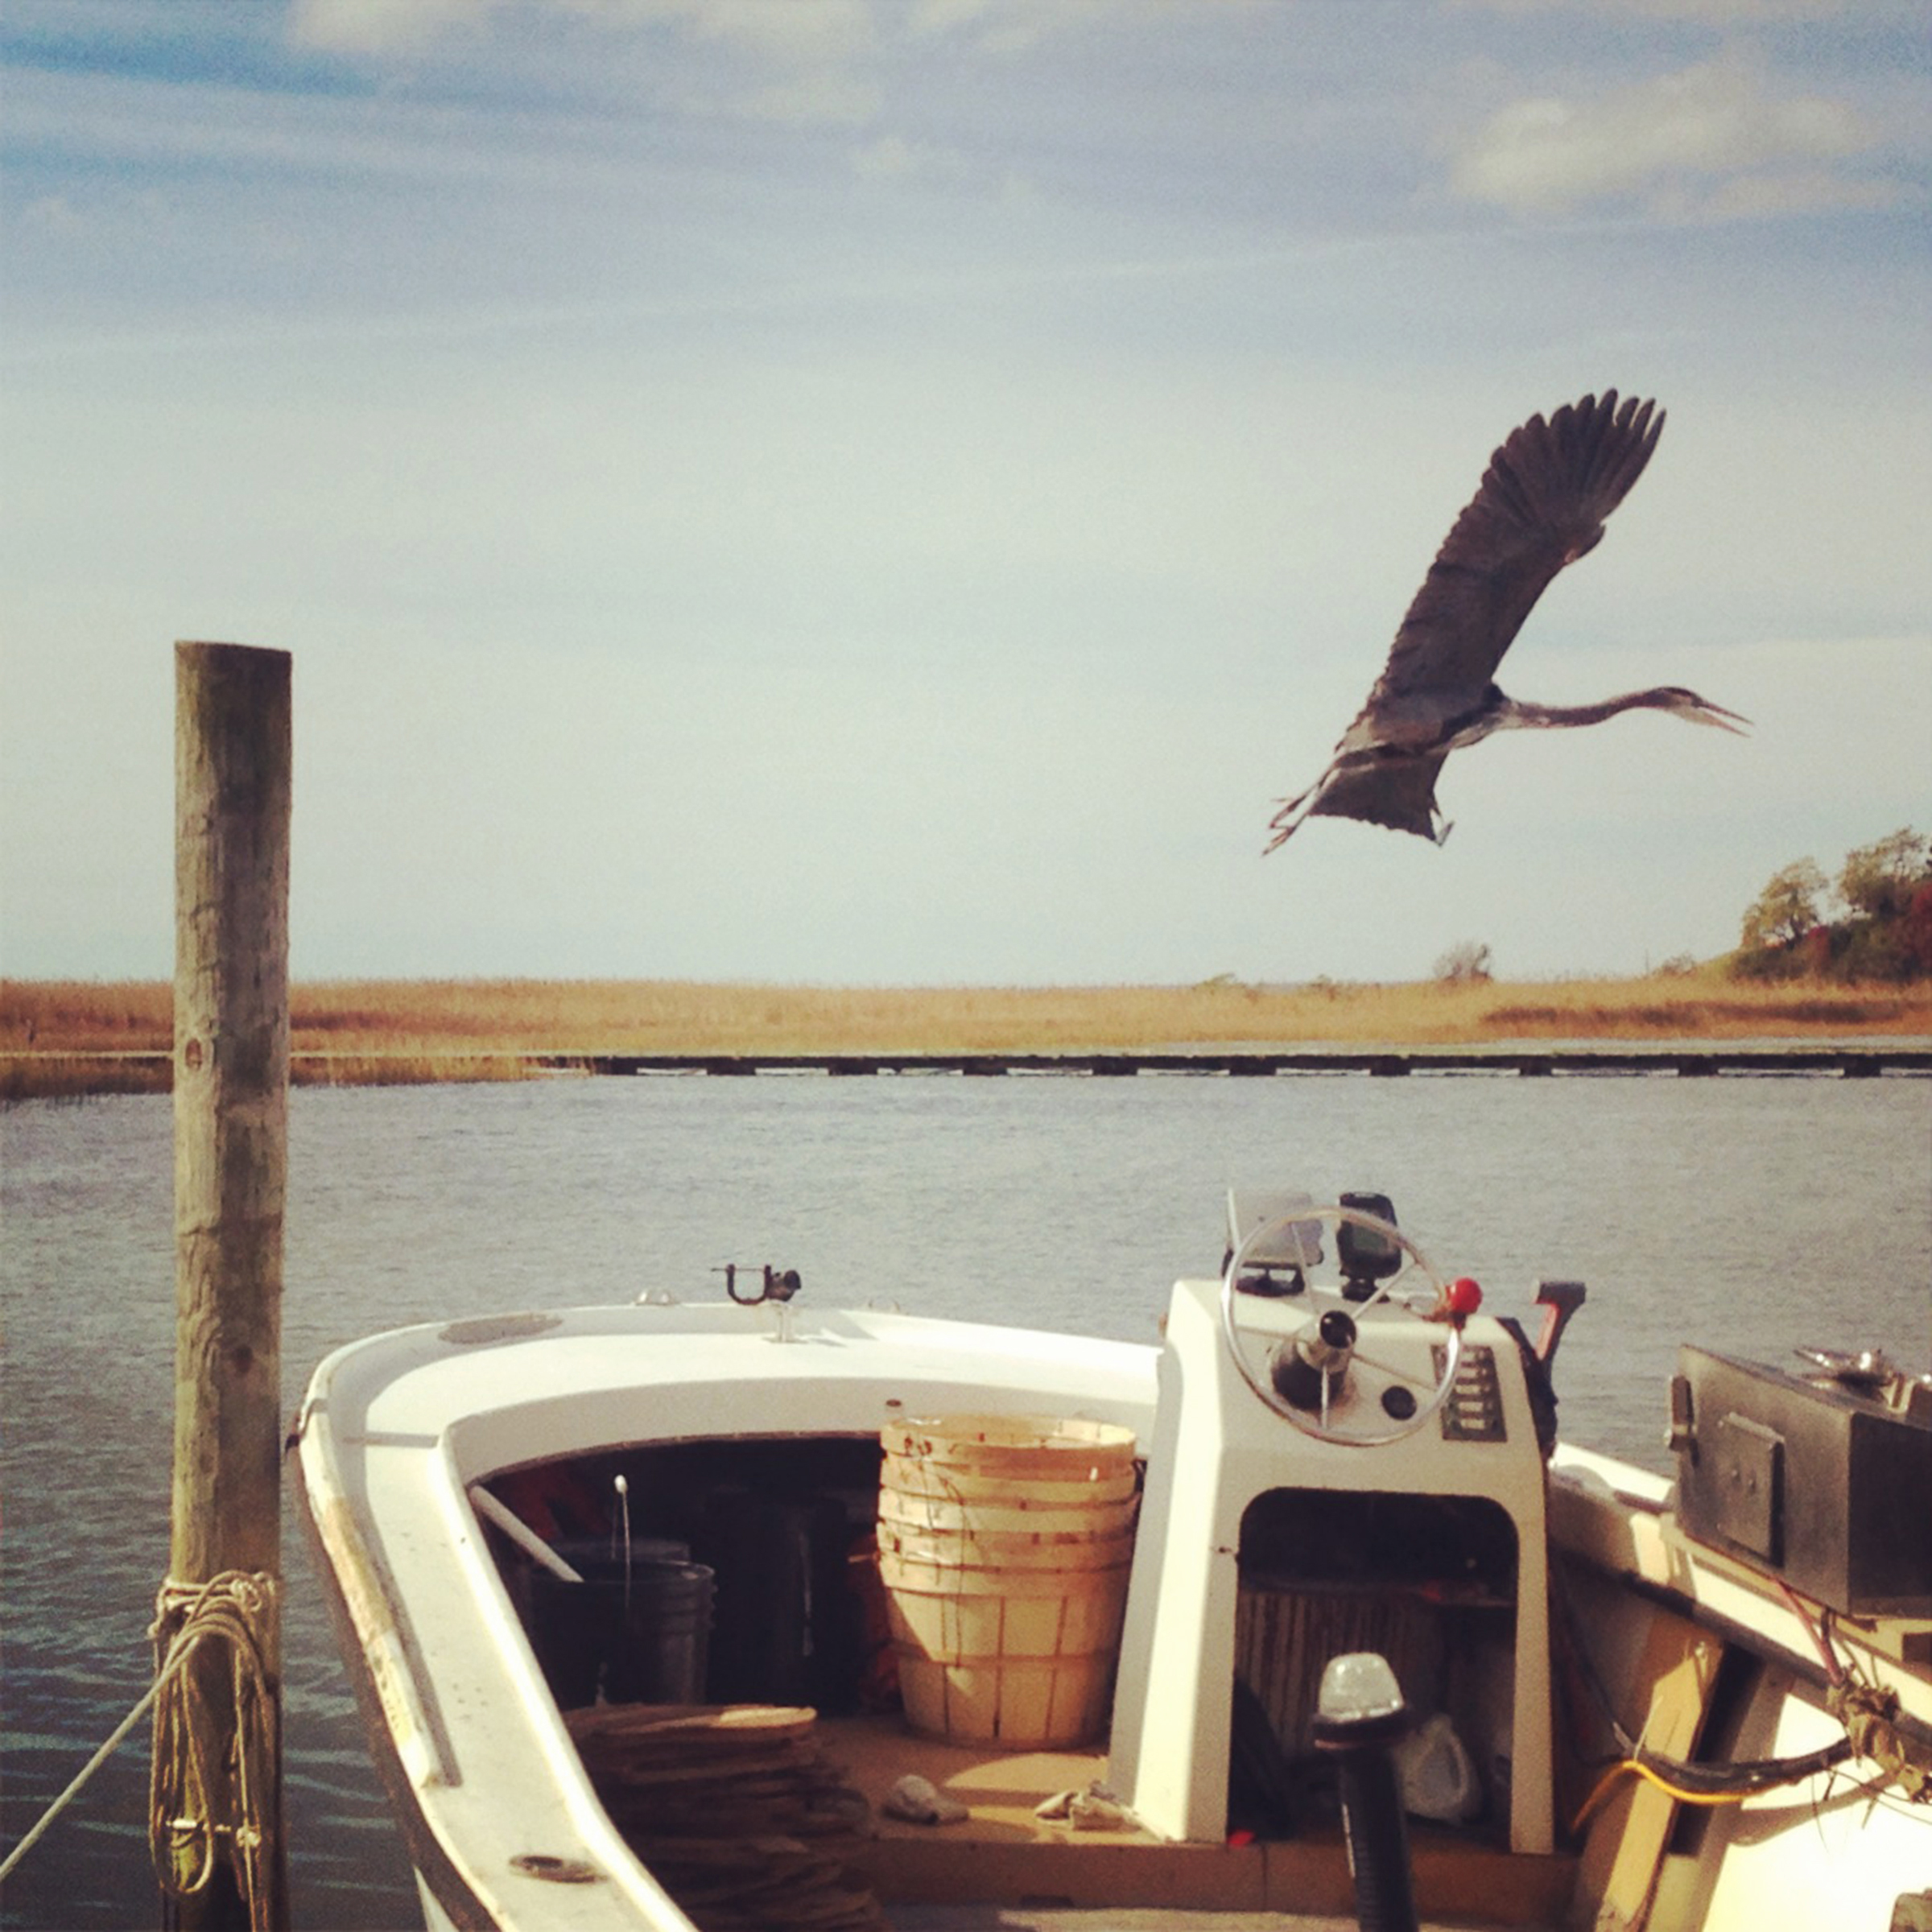 Photo Book - #BoatLife, a Photographic Essay is a photo book created in 2014, depicting the four years Jesse spent living on a sailboat in the Chesapeake Bay. Every photo in the book was captured with an iPhone.